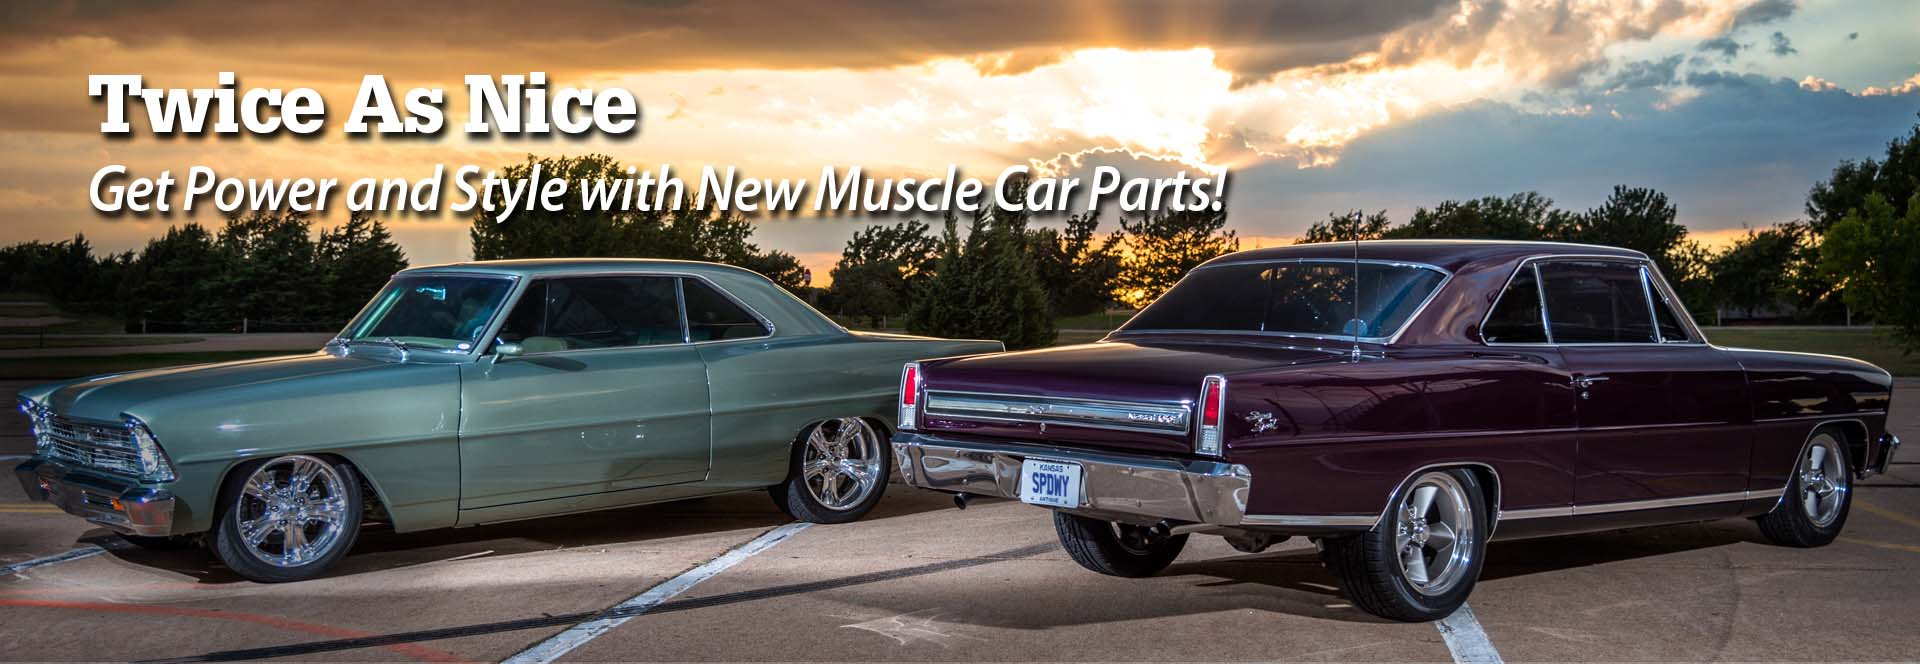 Shop Muscle Car Parts